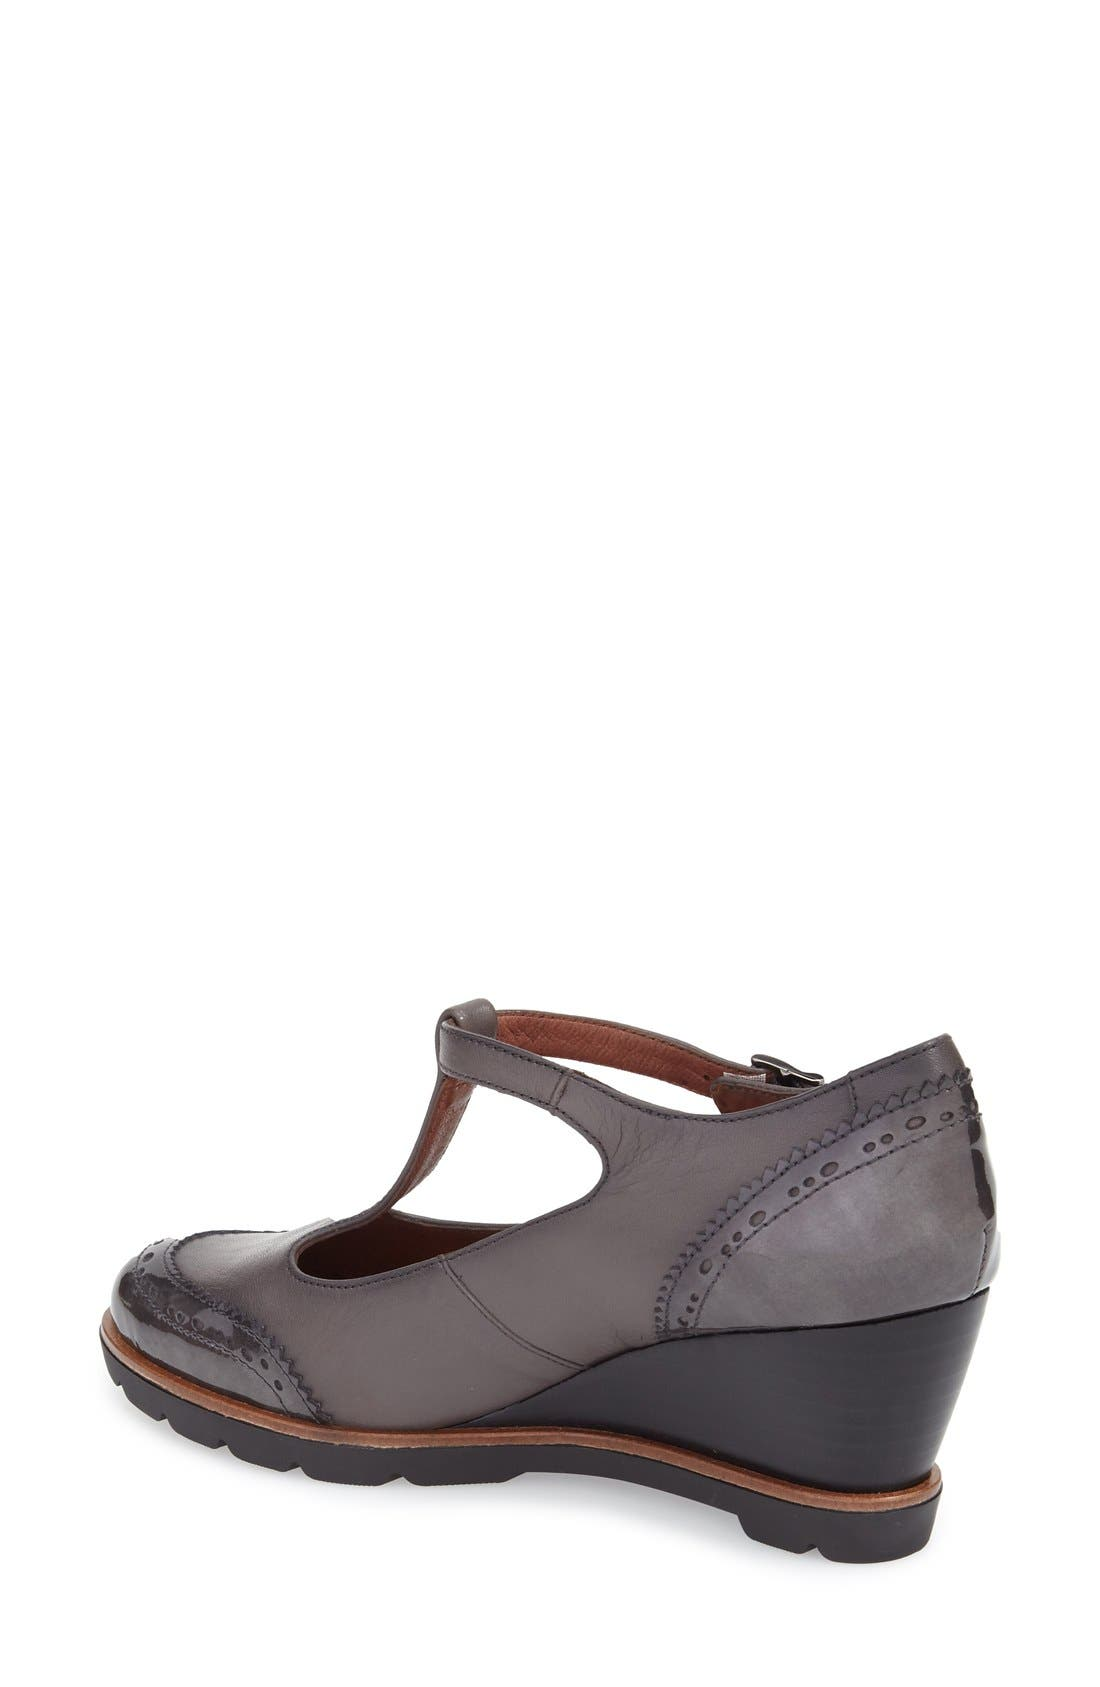 Alternate Image 2  - Hispanitas 'Halea' T-Strap Wedge Pump (Women)